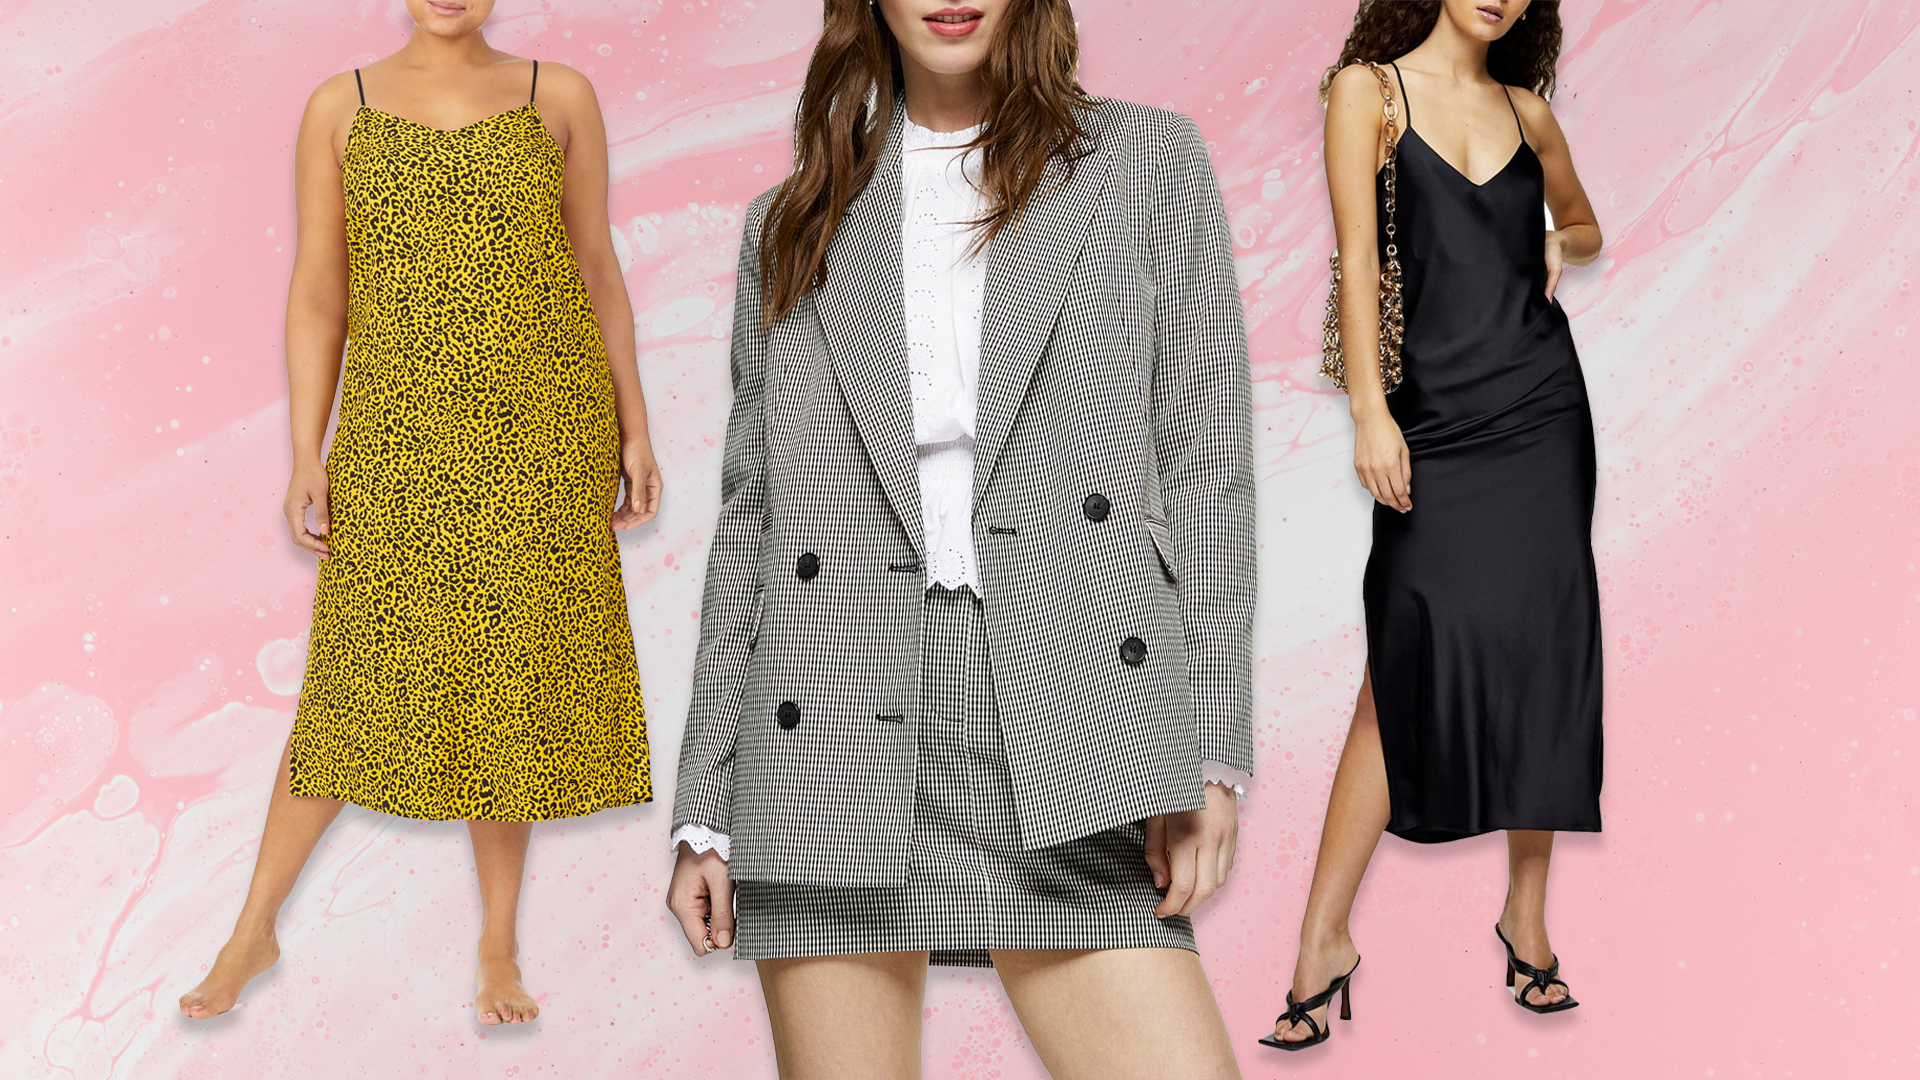 Nordstrom's Clearance Sale Has Up To 70% Off Tons Of Summer Must-Haves